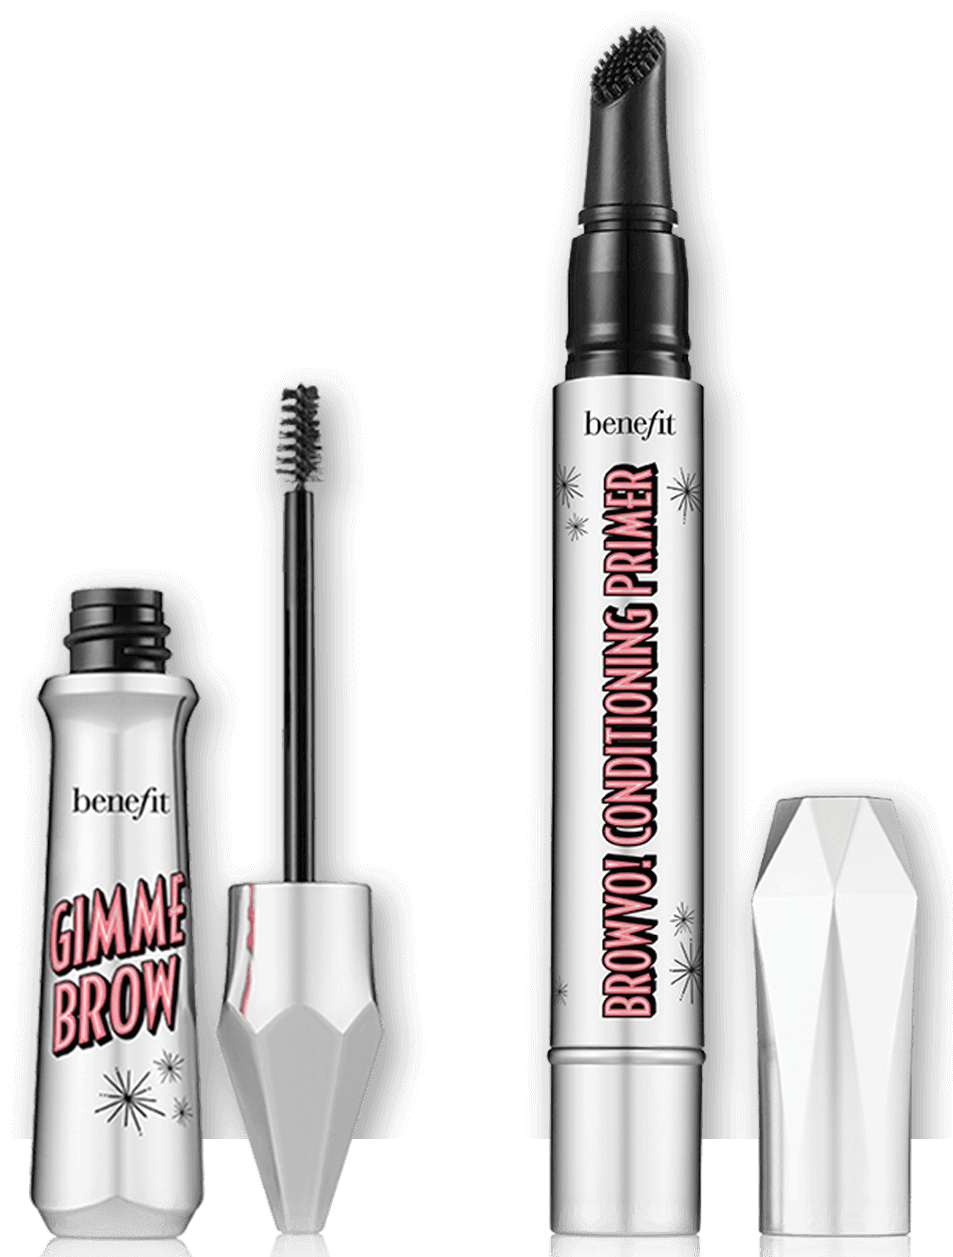 Benefit Cosmetics Explore with Natural Brow Styling Set